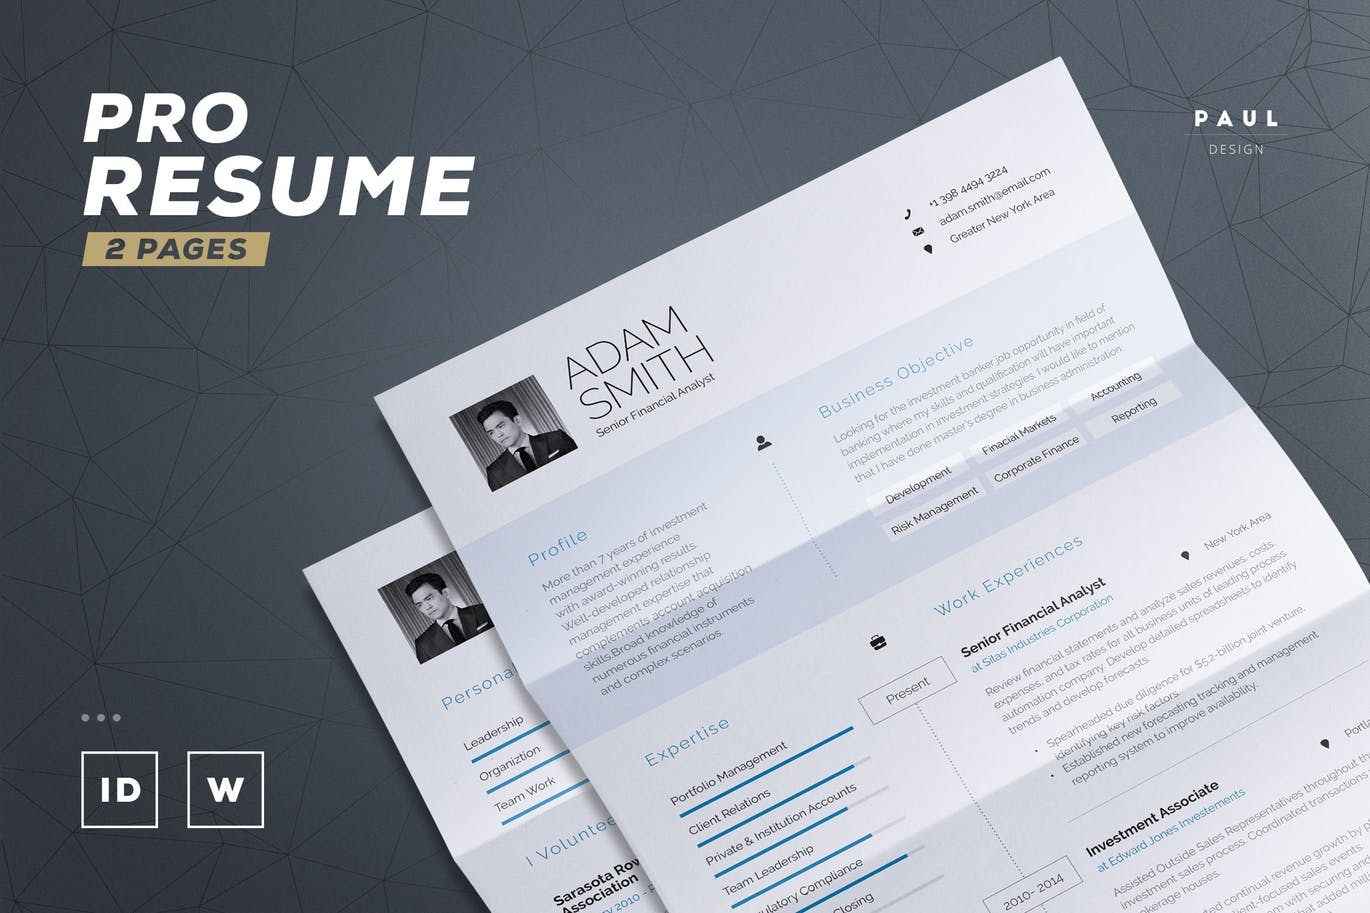 50 best cv resume templates of 2018 design shack this is a resume template with a professional design it comes in both word and indesign formats the template has 2 pages and a cover letter maxwellsz